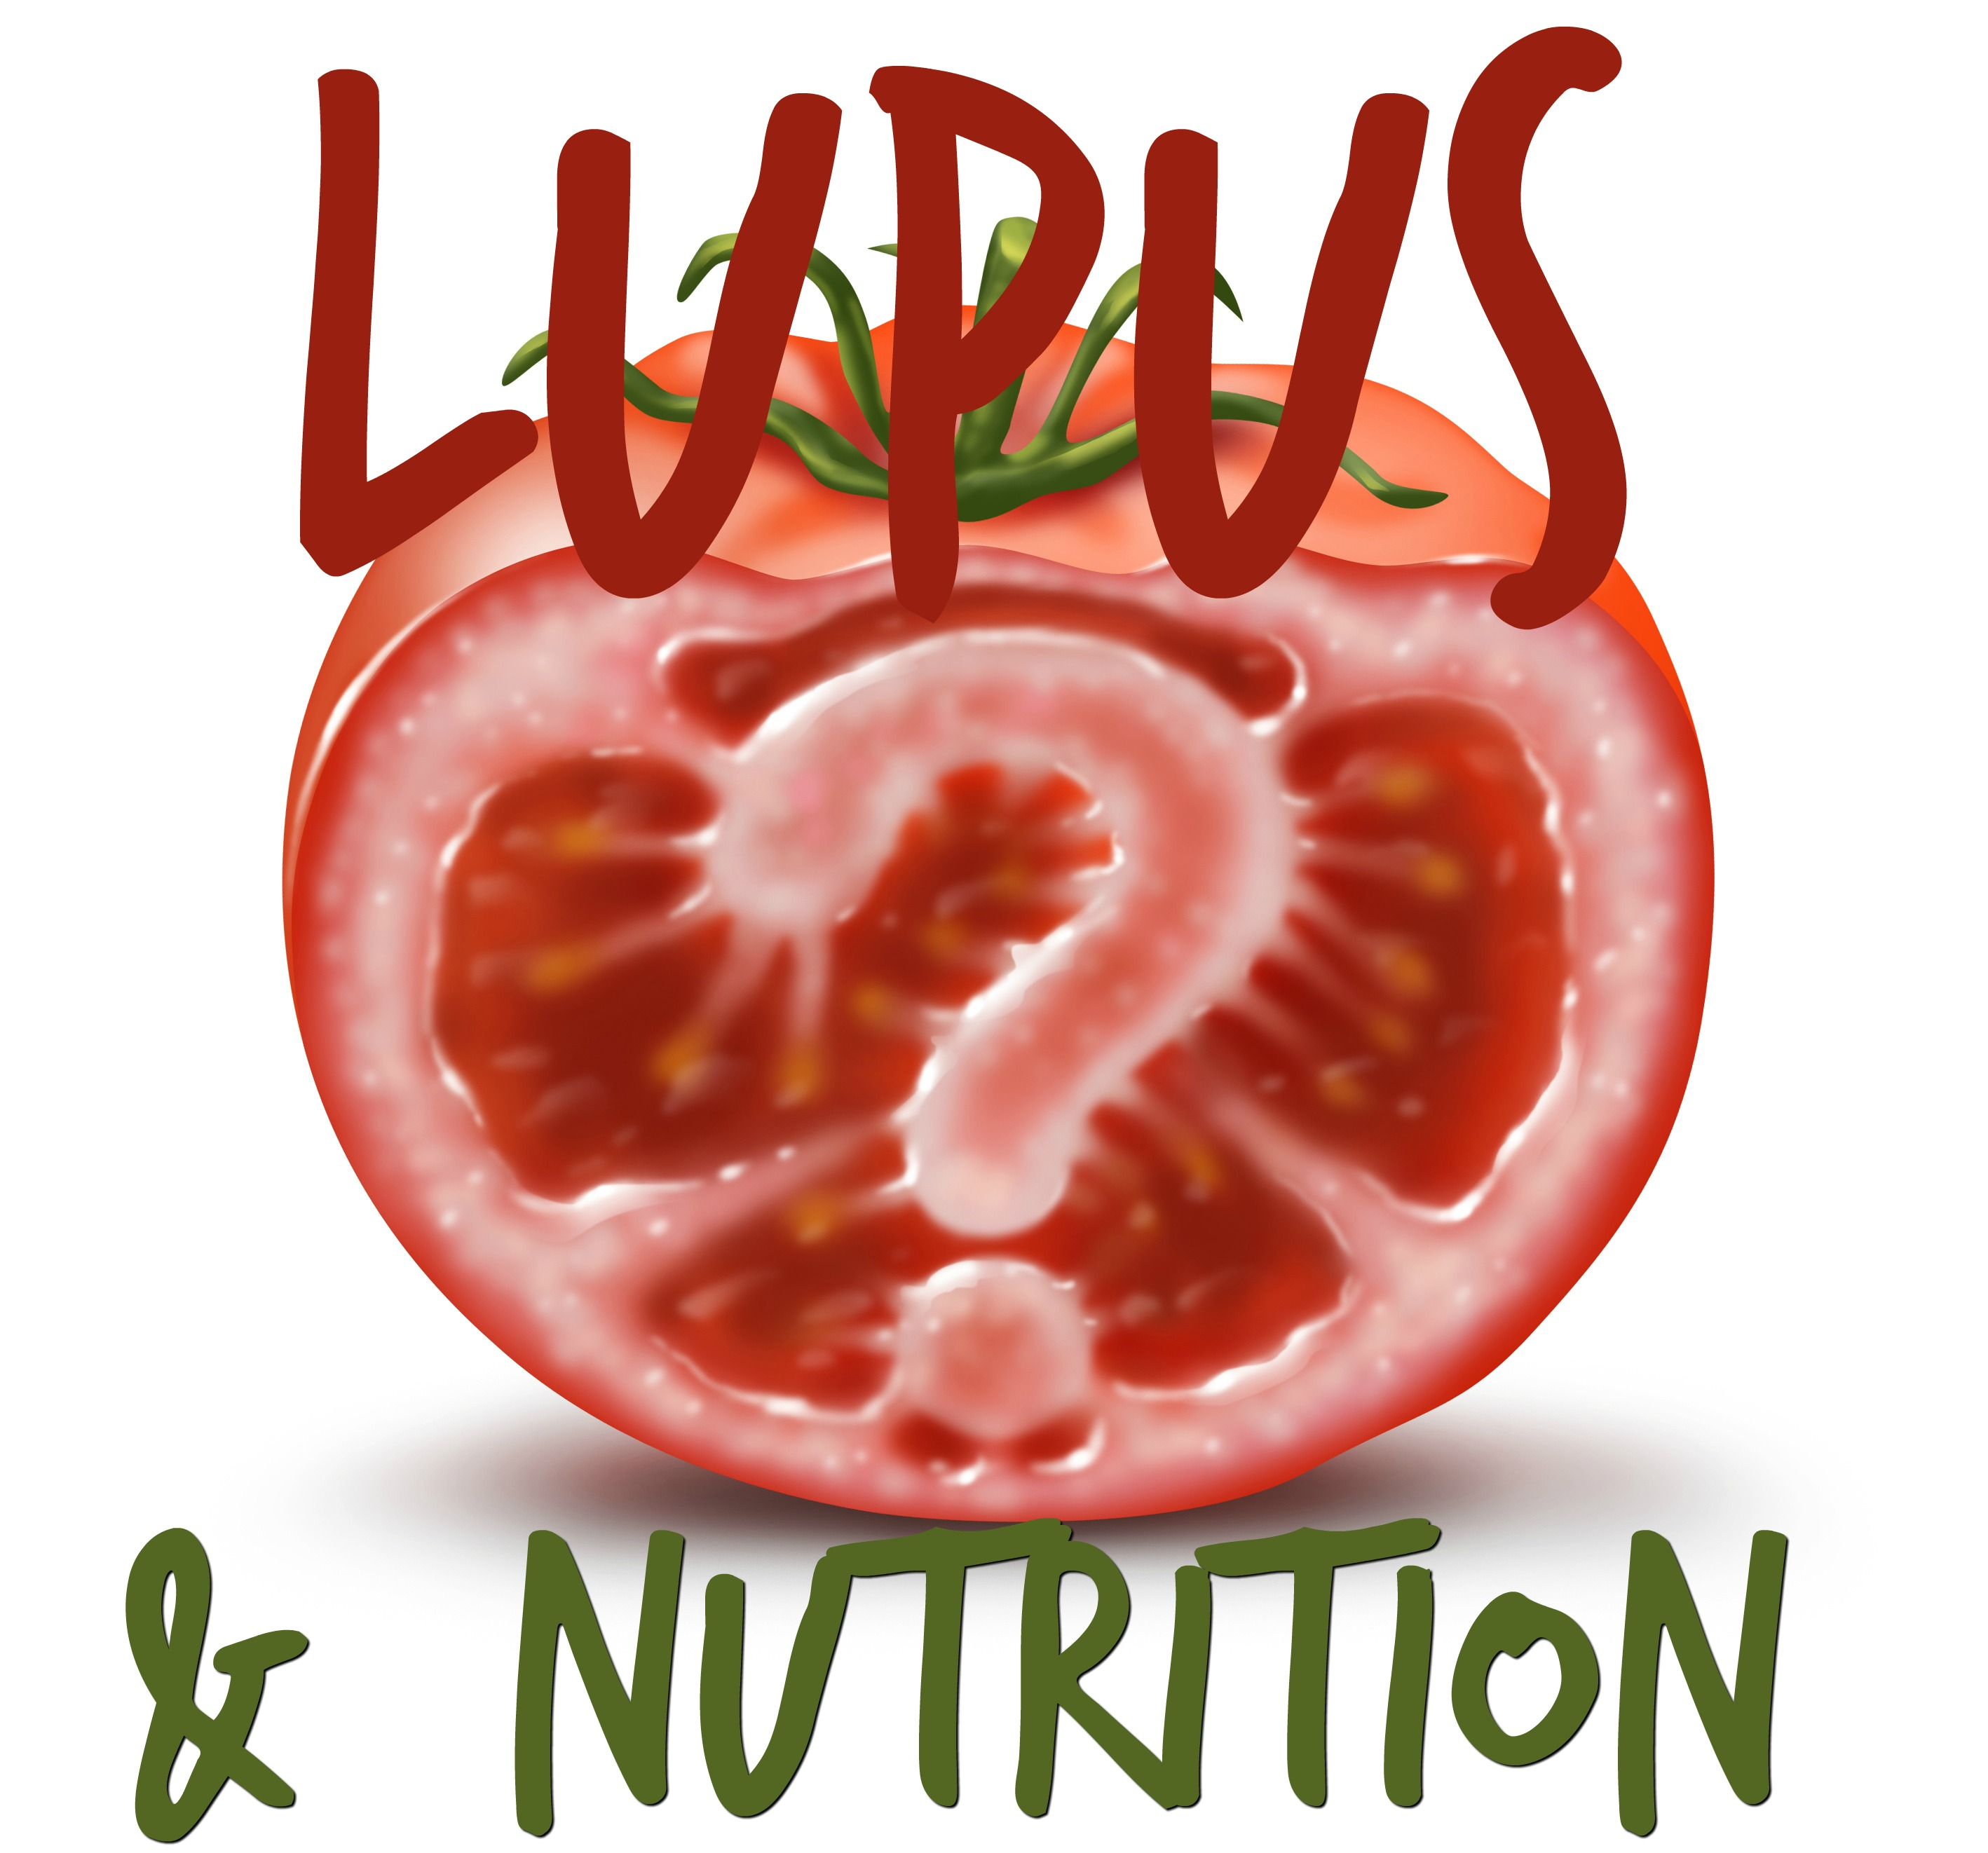 How Can Lupus Be Managed The Natural Way